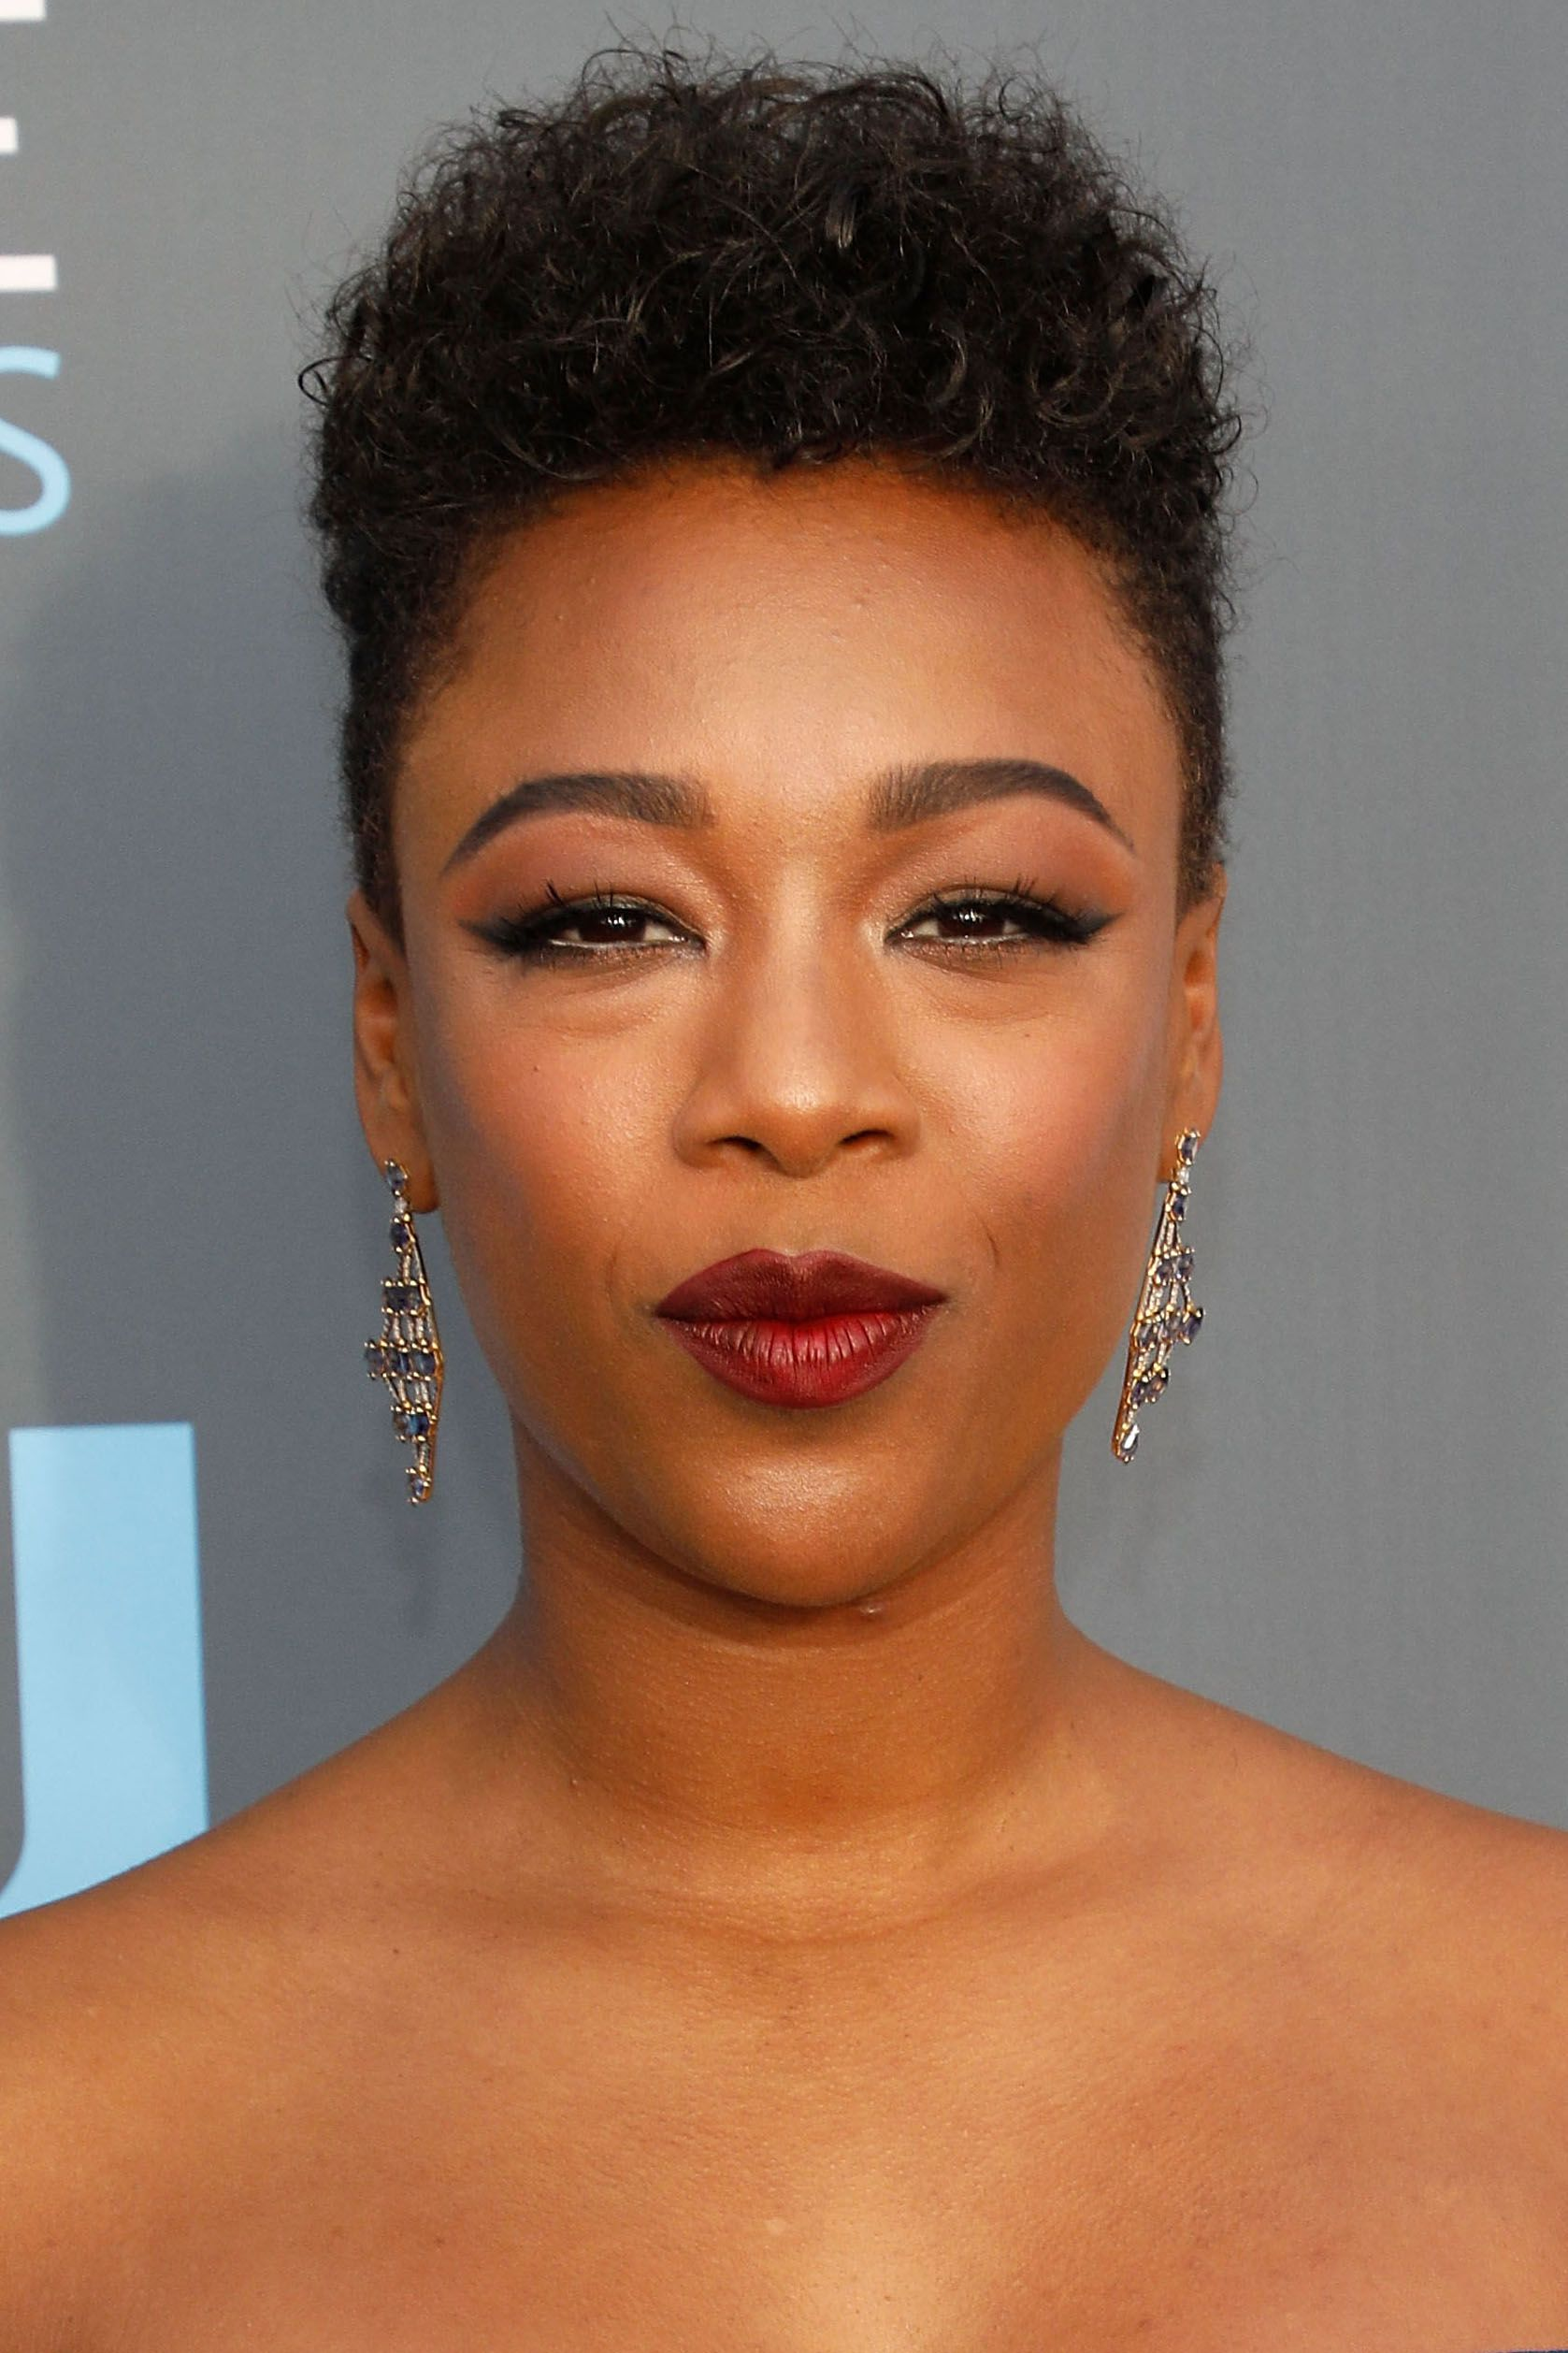 40-best-short-pixie-cut-hairstyles-2019-cute-haircuts-for-along-with-20-great-pictures-african-american-haircu